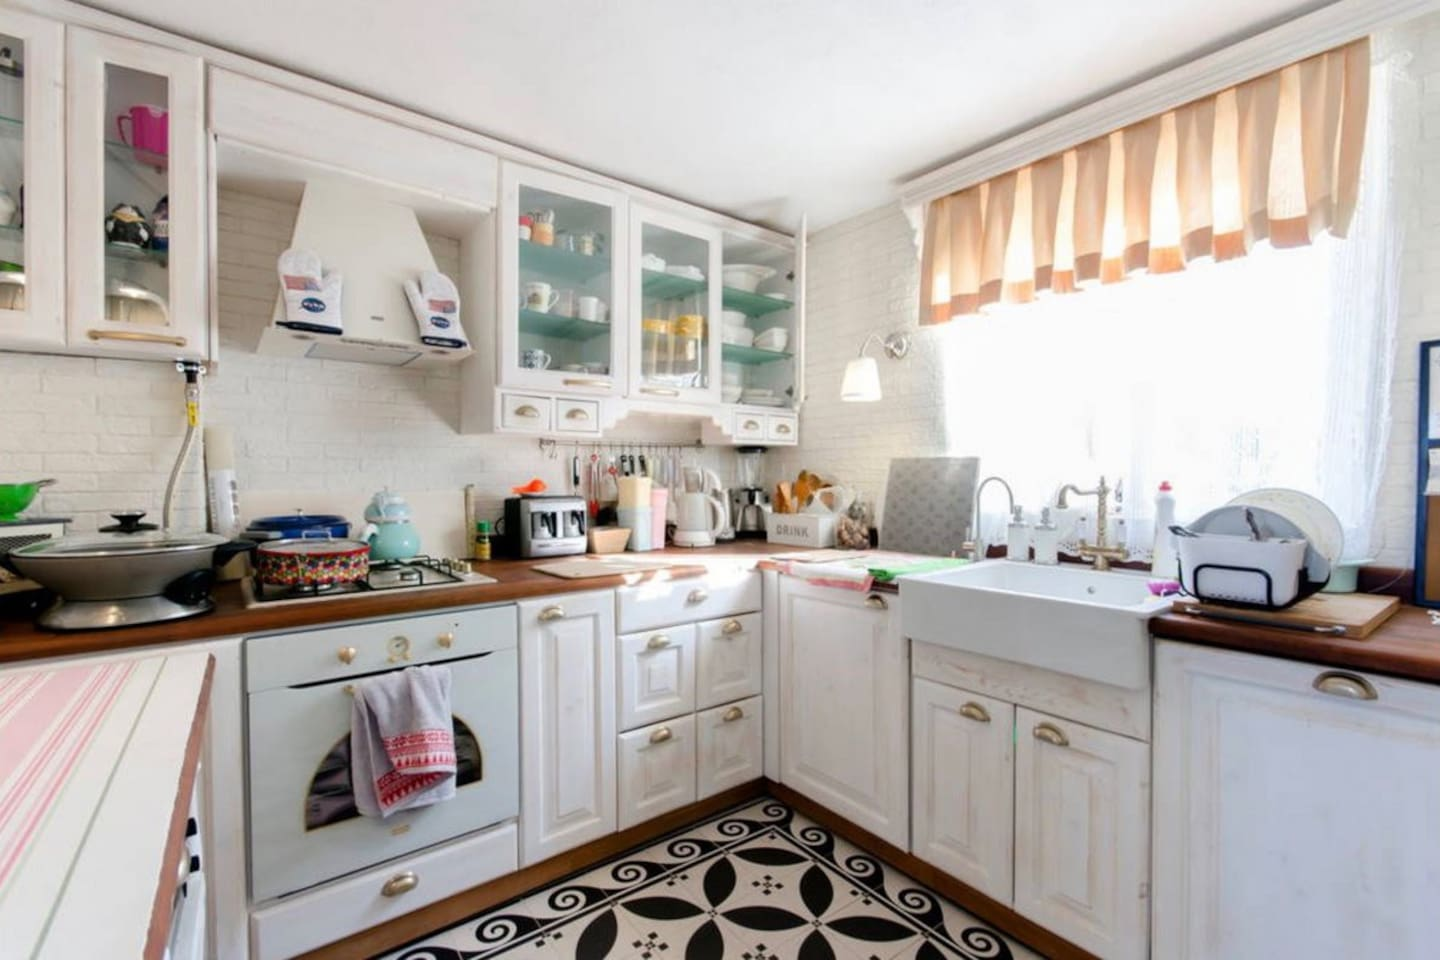 Vintage looking kitchen